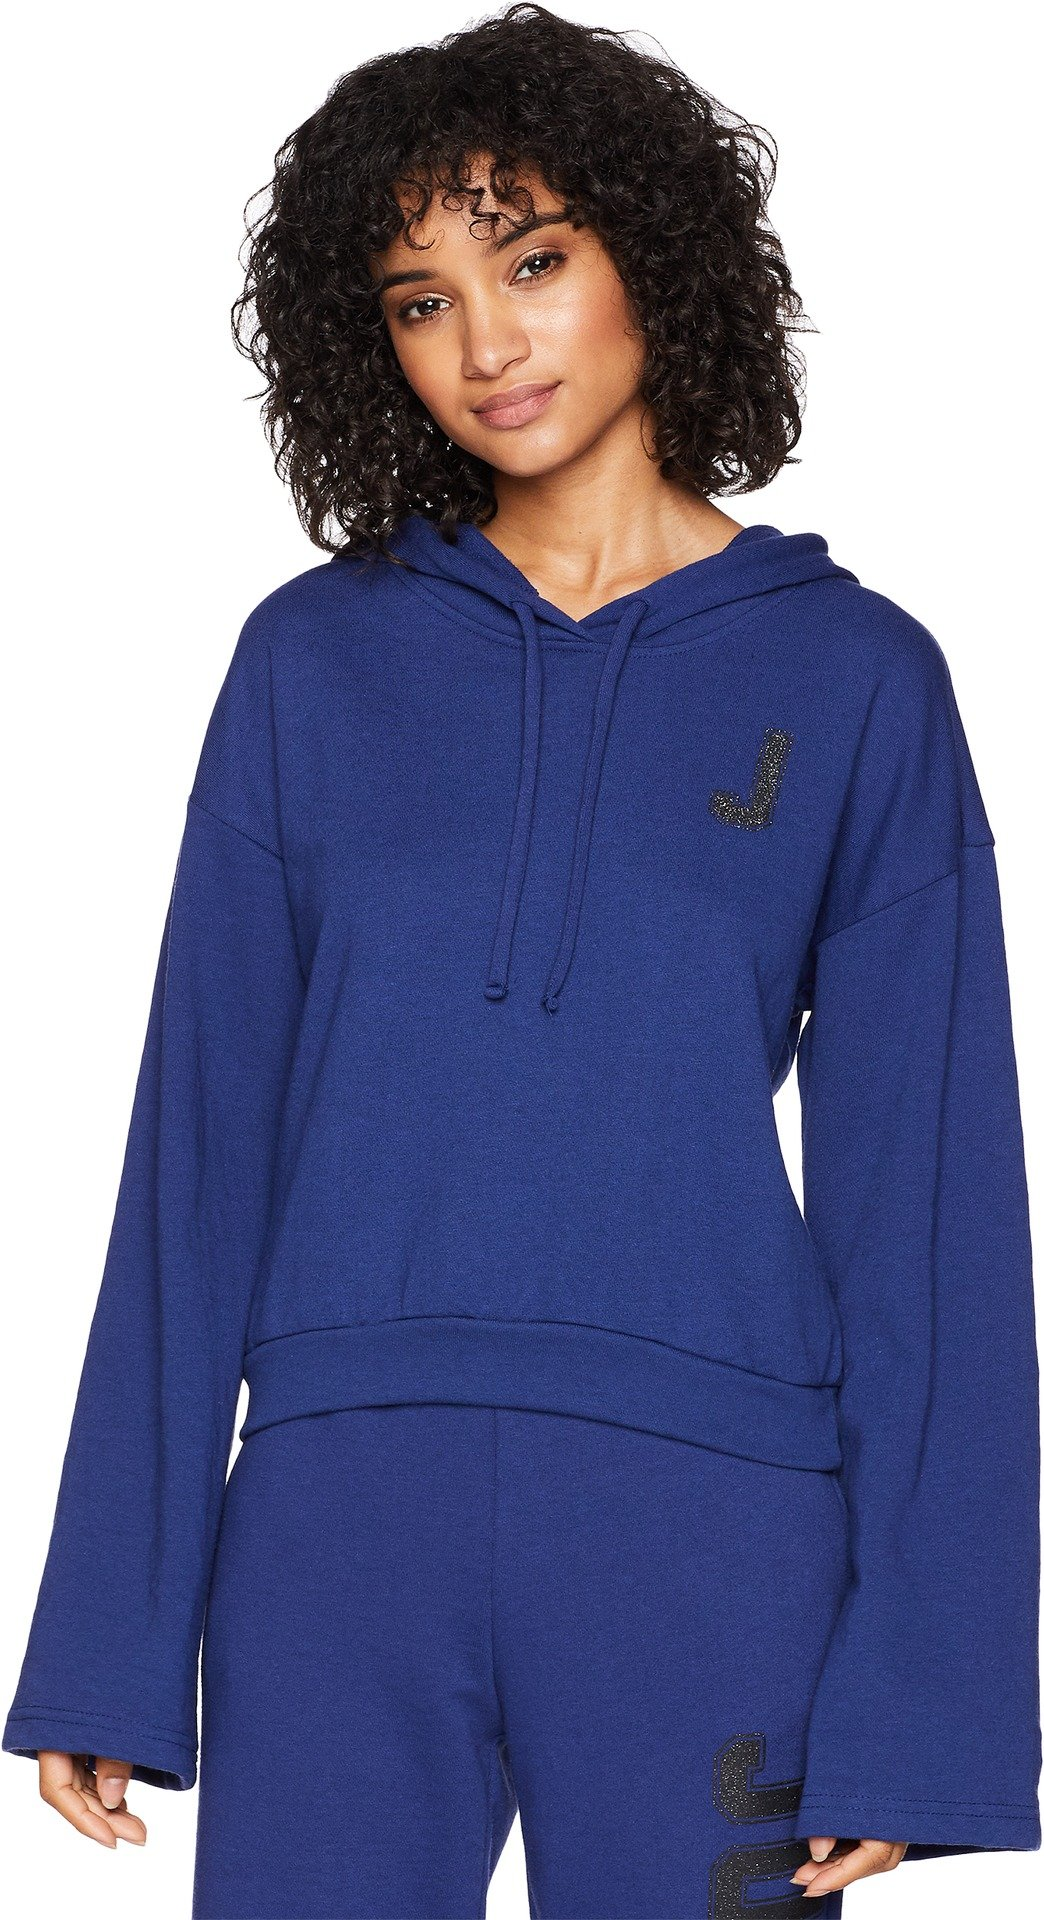 Juicy Couture Women's J Pullover Hoodie Twilight Blue Large